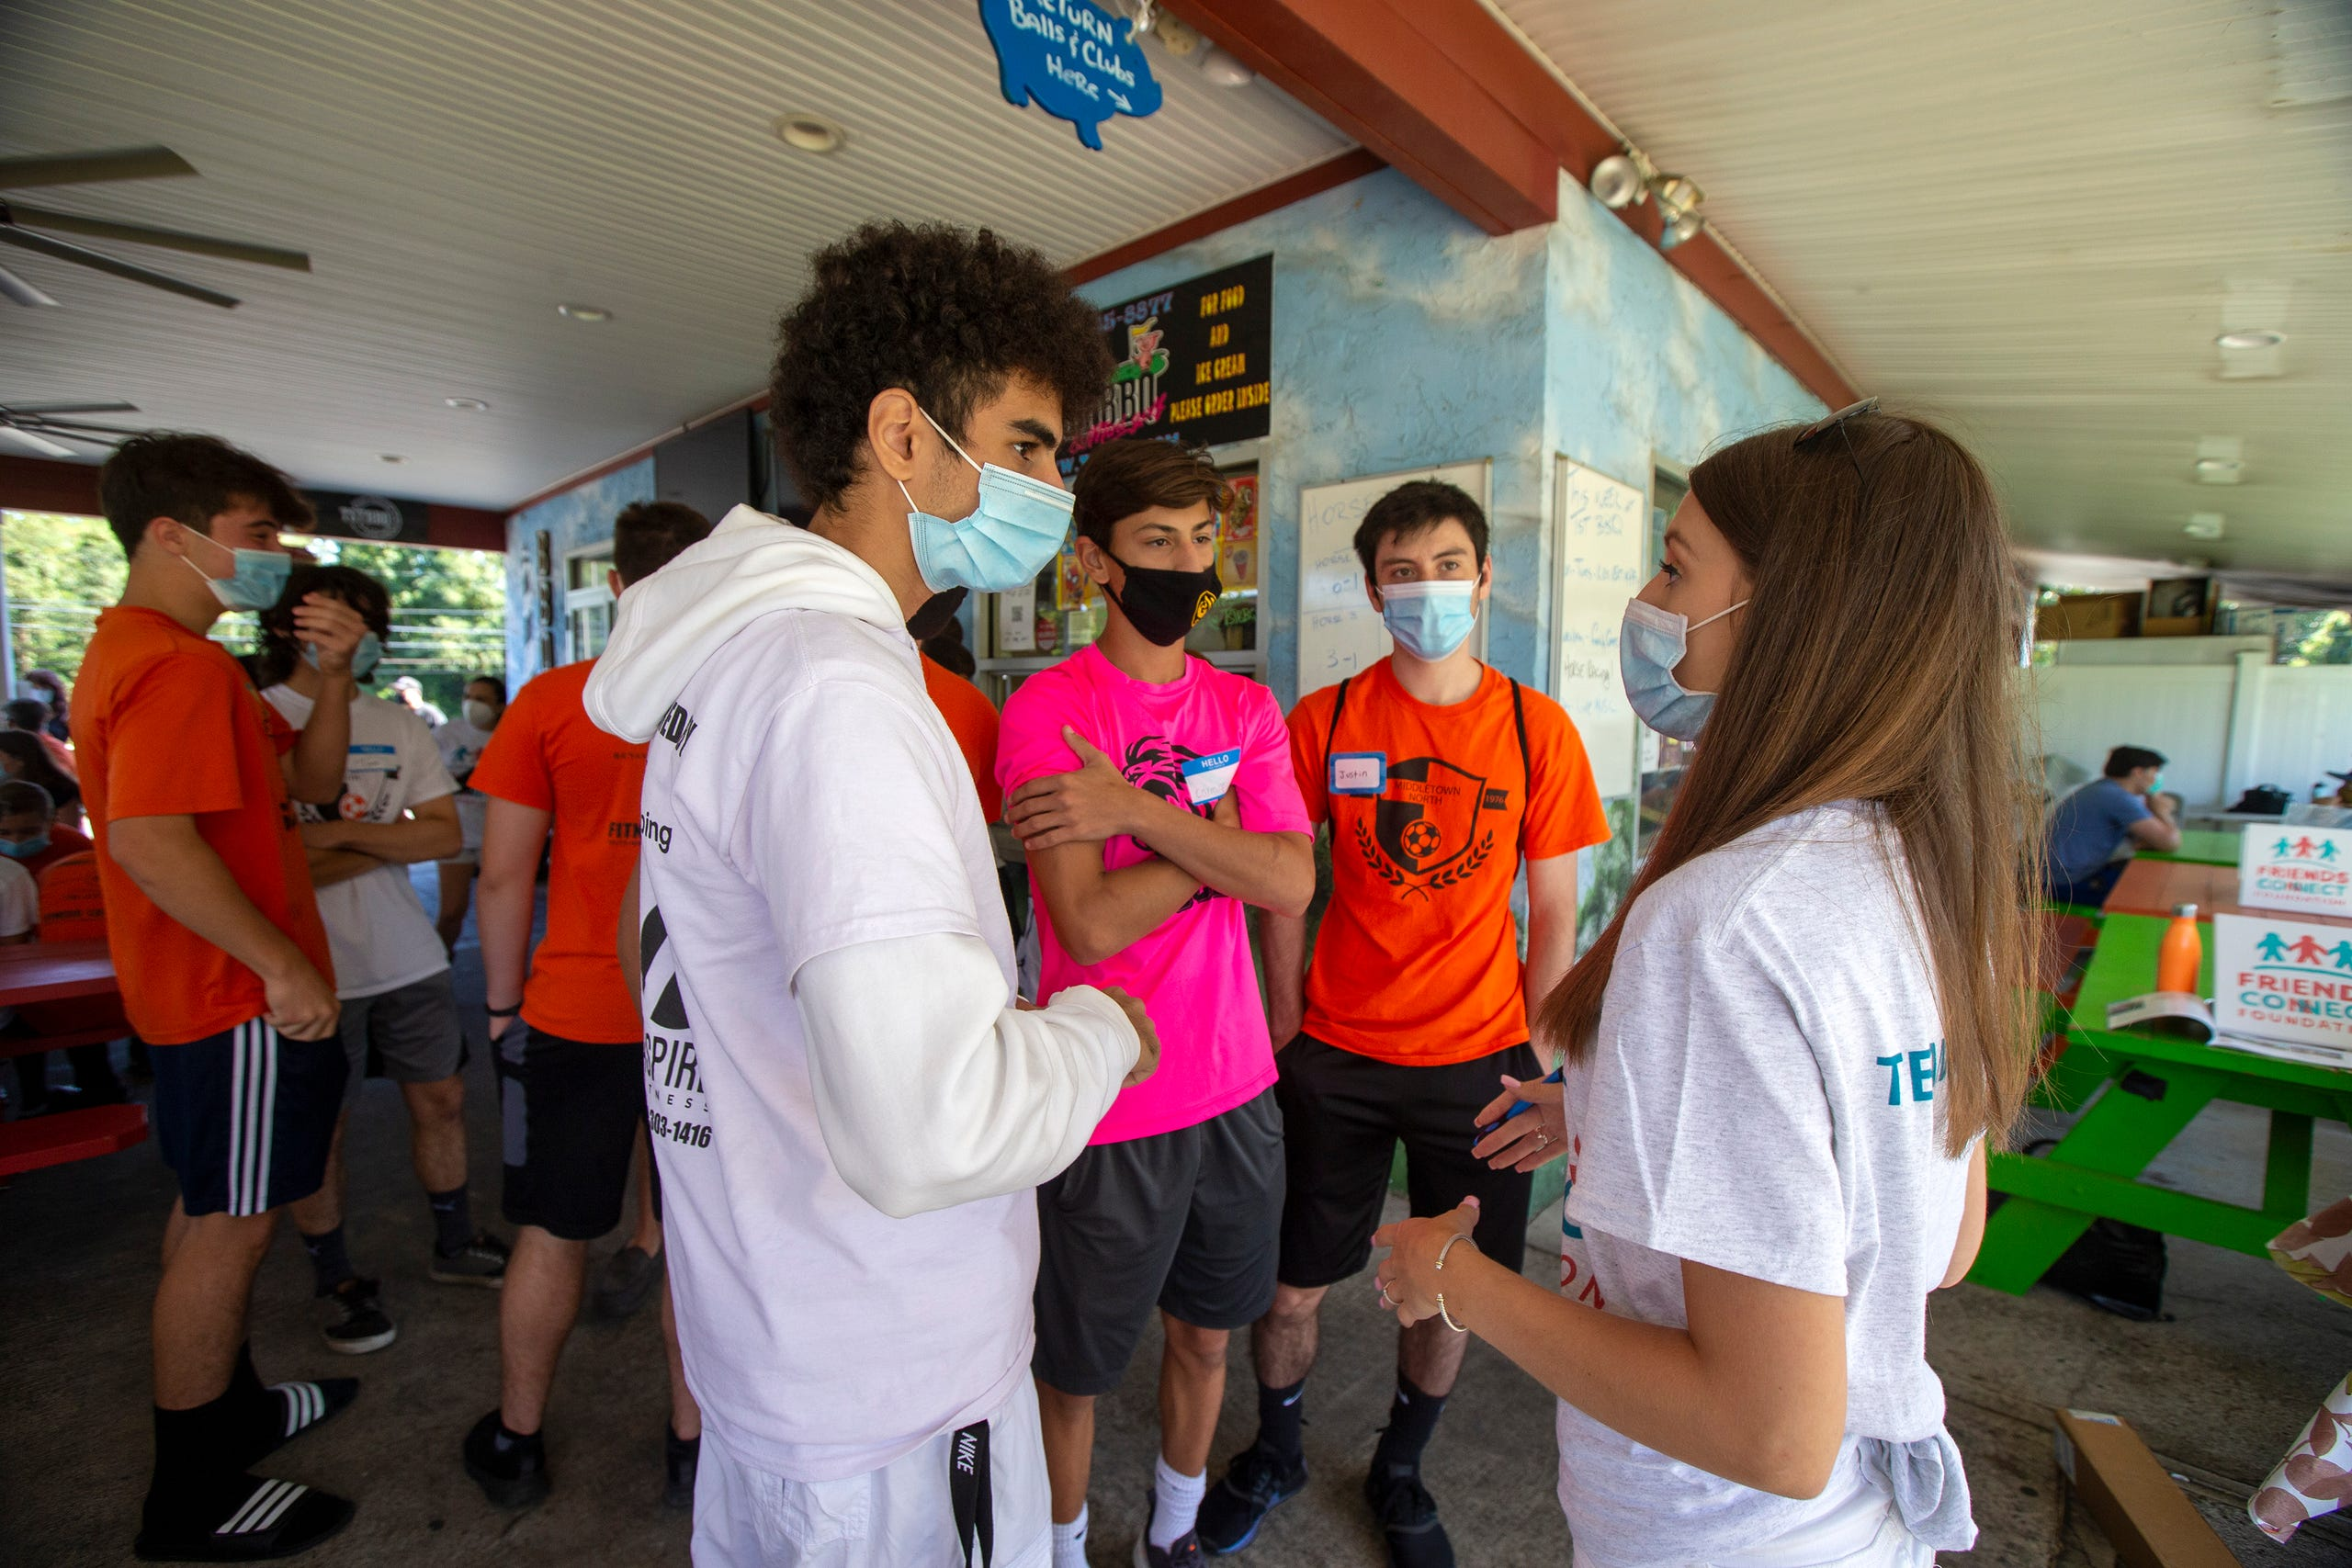 Sophia Ziajski, 19, of Middletown speaks to members of the Middletown North boys soccer team who will play mini-golf with special-needs children and adults as part of Friends Connect Foundation, a nonprofit run by Sophia Ziajski,, at TST BBQ & Mini Golf in Middletown, NJ Tuesday, August 18, 2020.